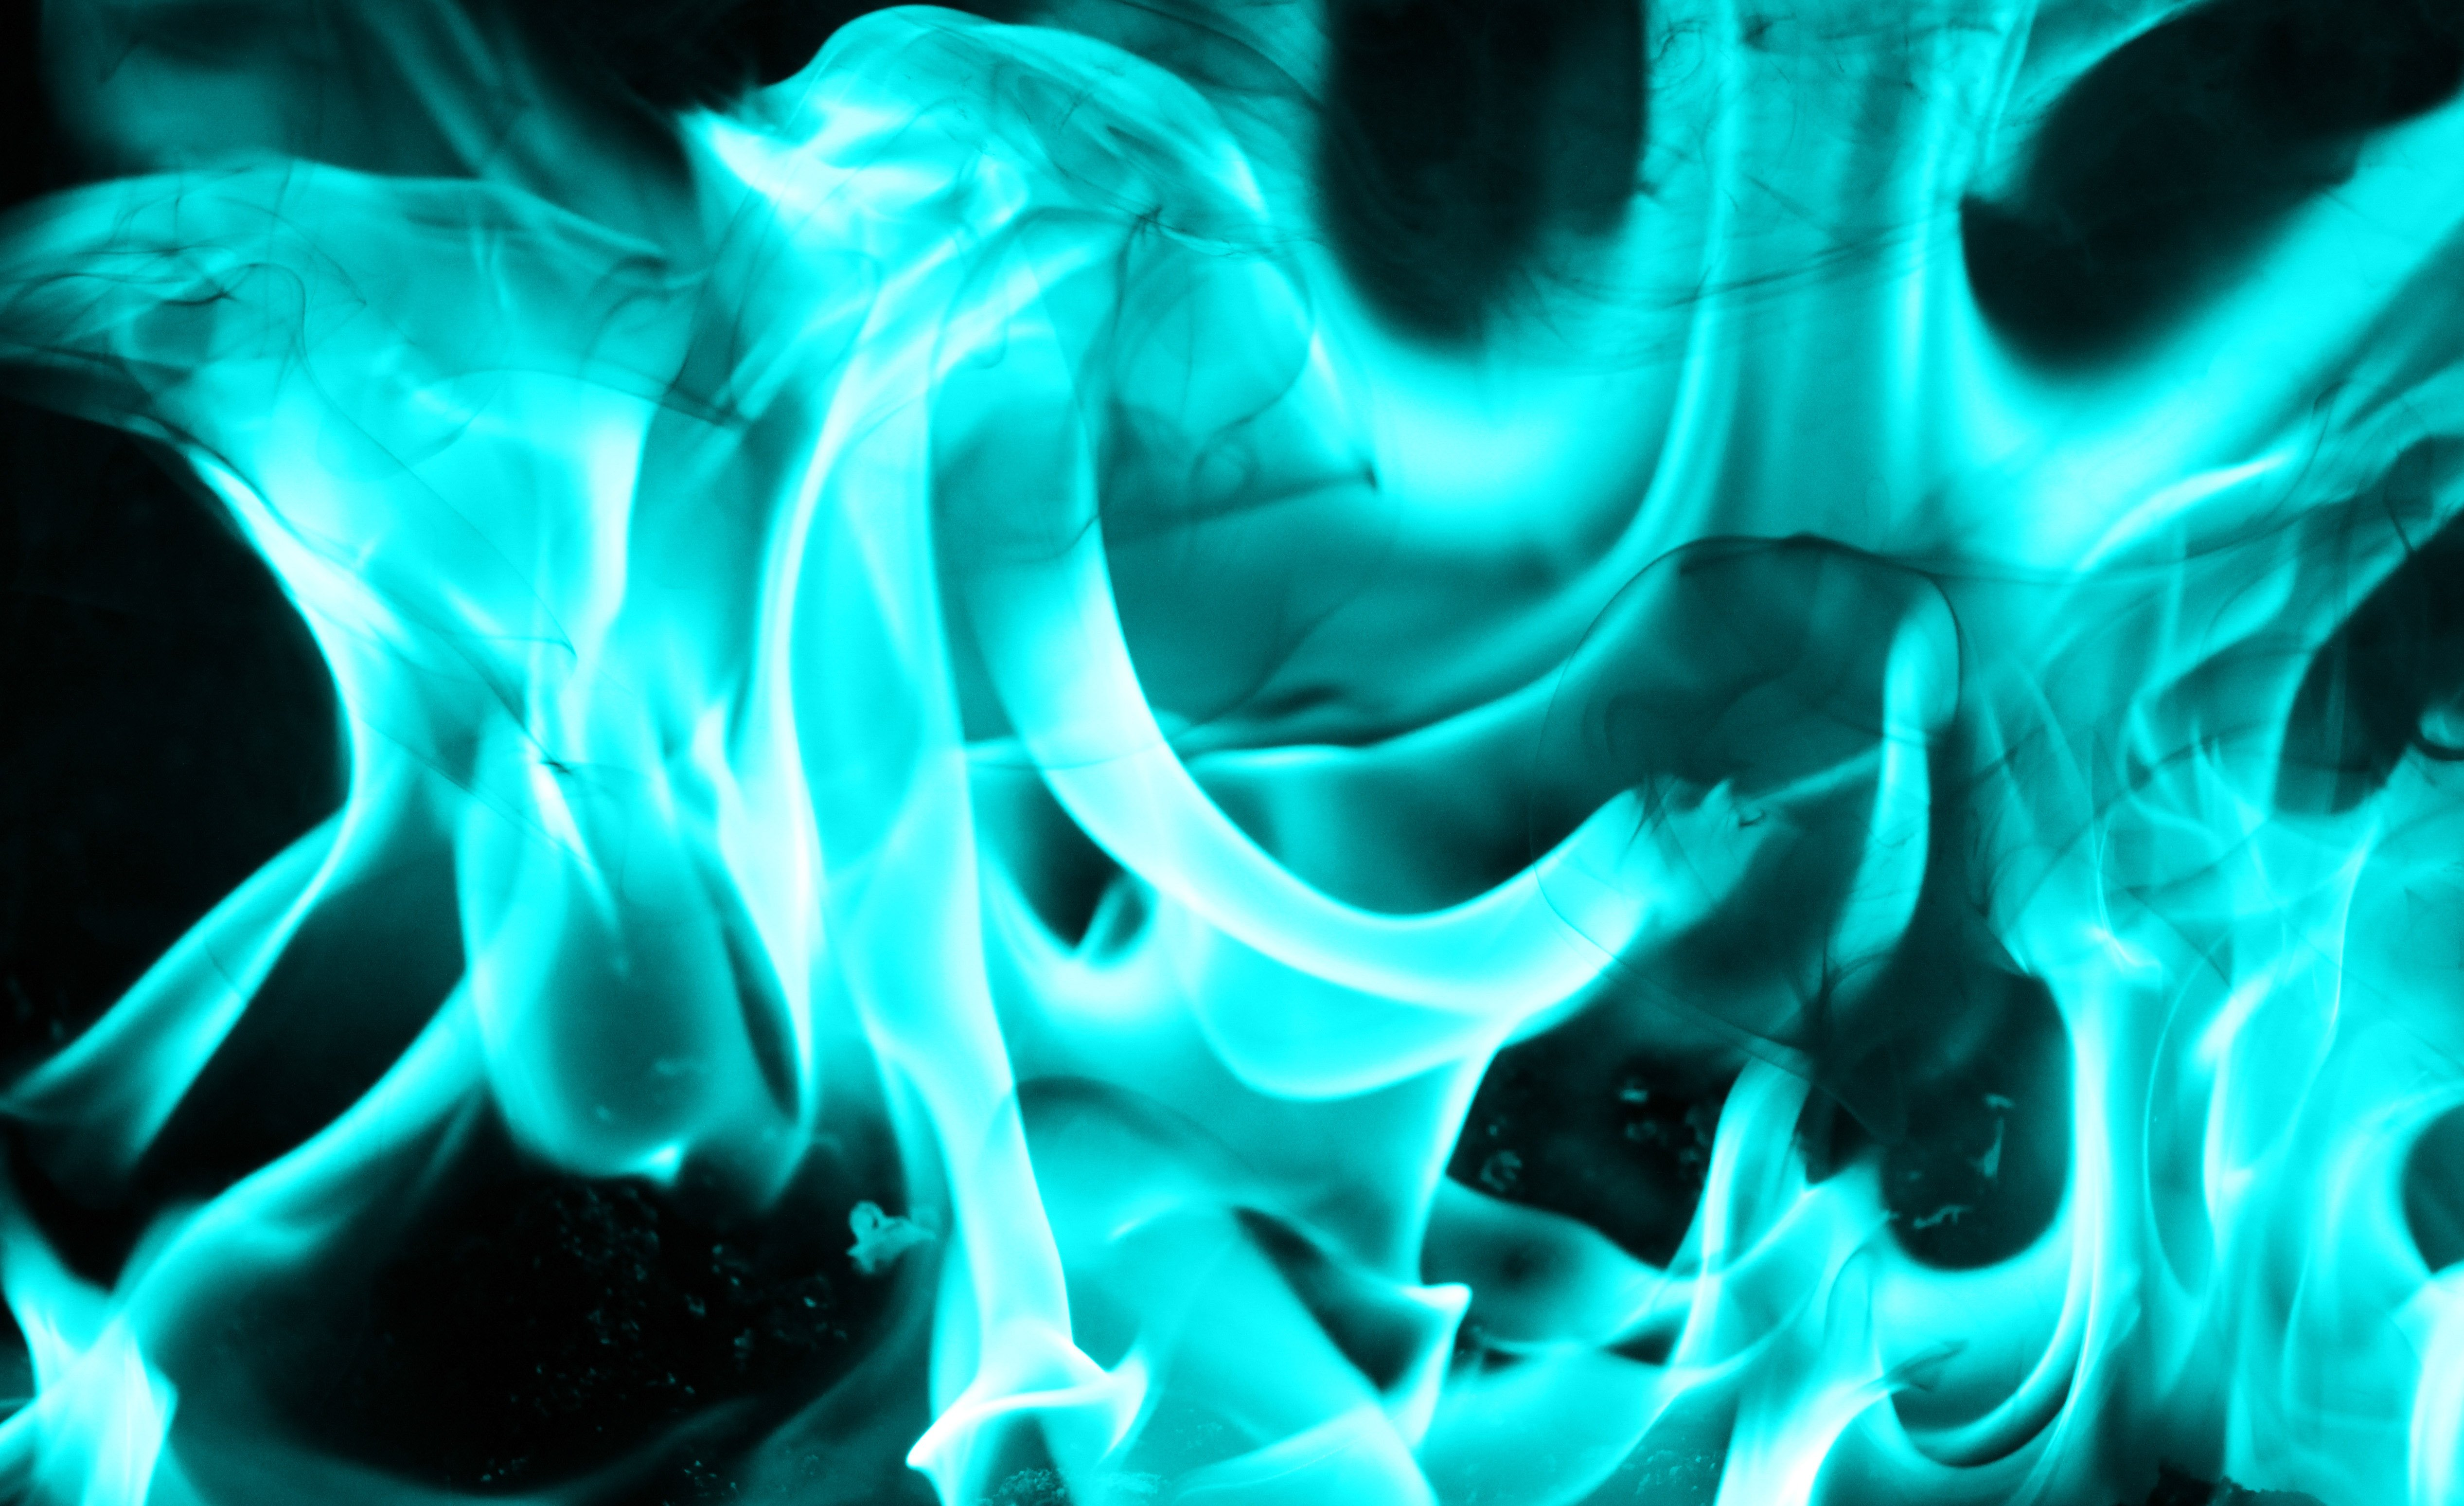 teal fire texture cool flame cold burn stock photo